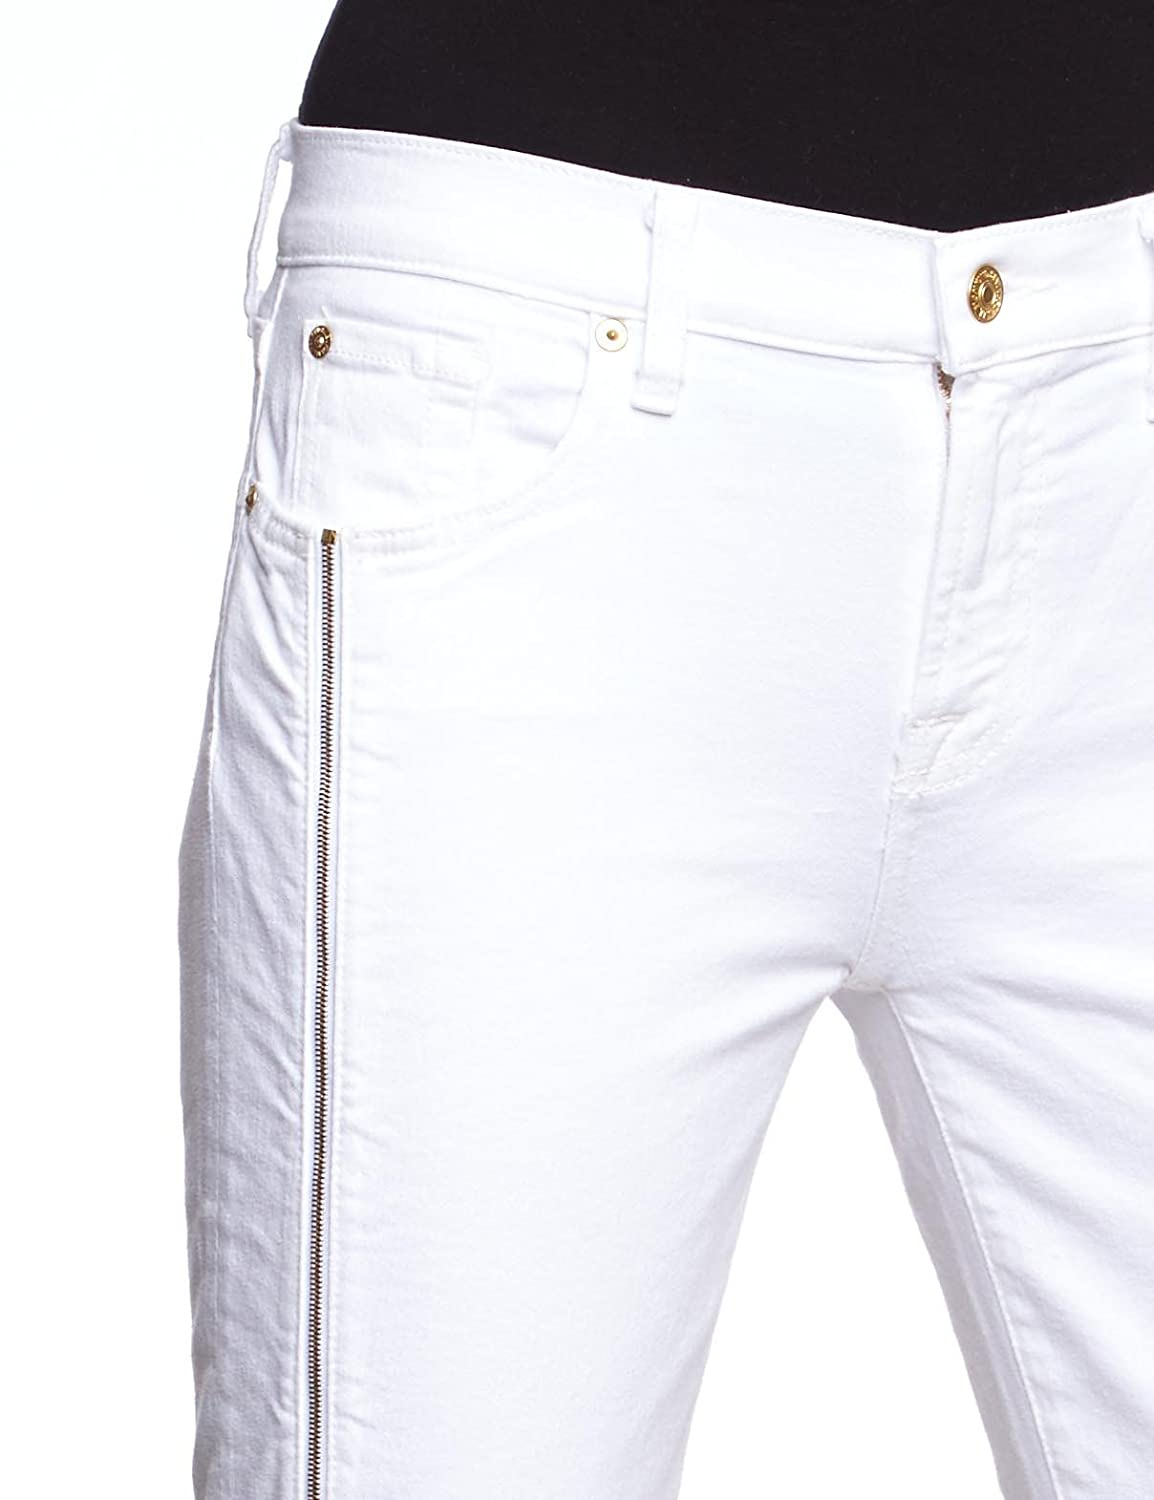 7 for all mankind Women's Skinny / Slim Fit Jeans